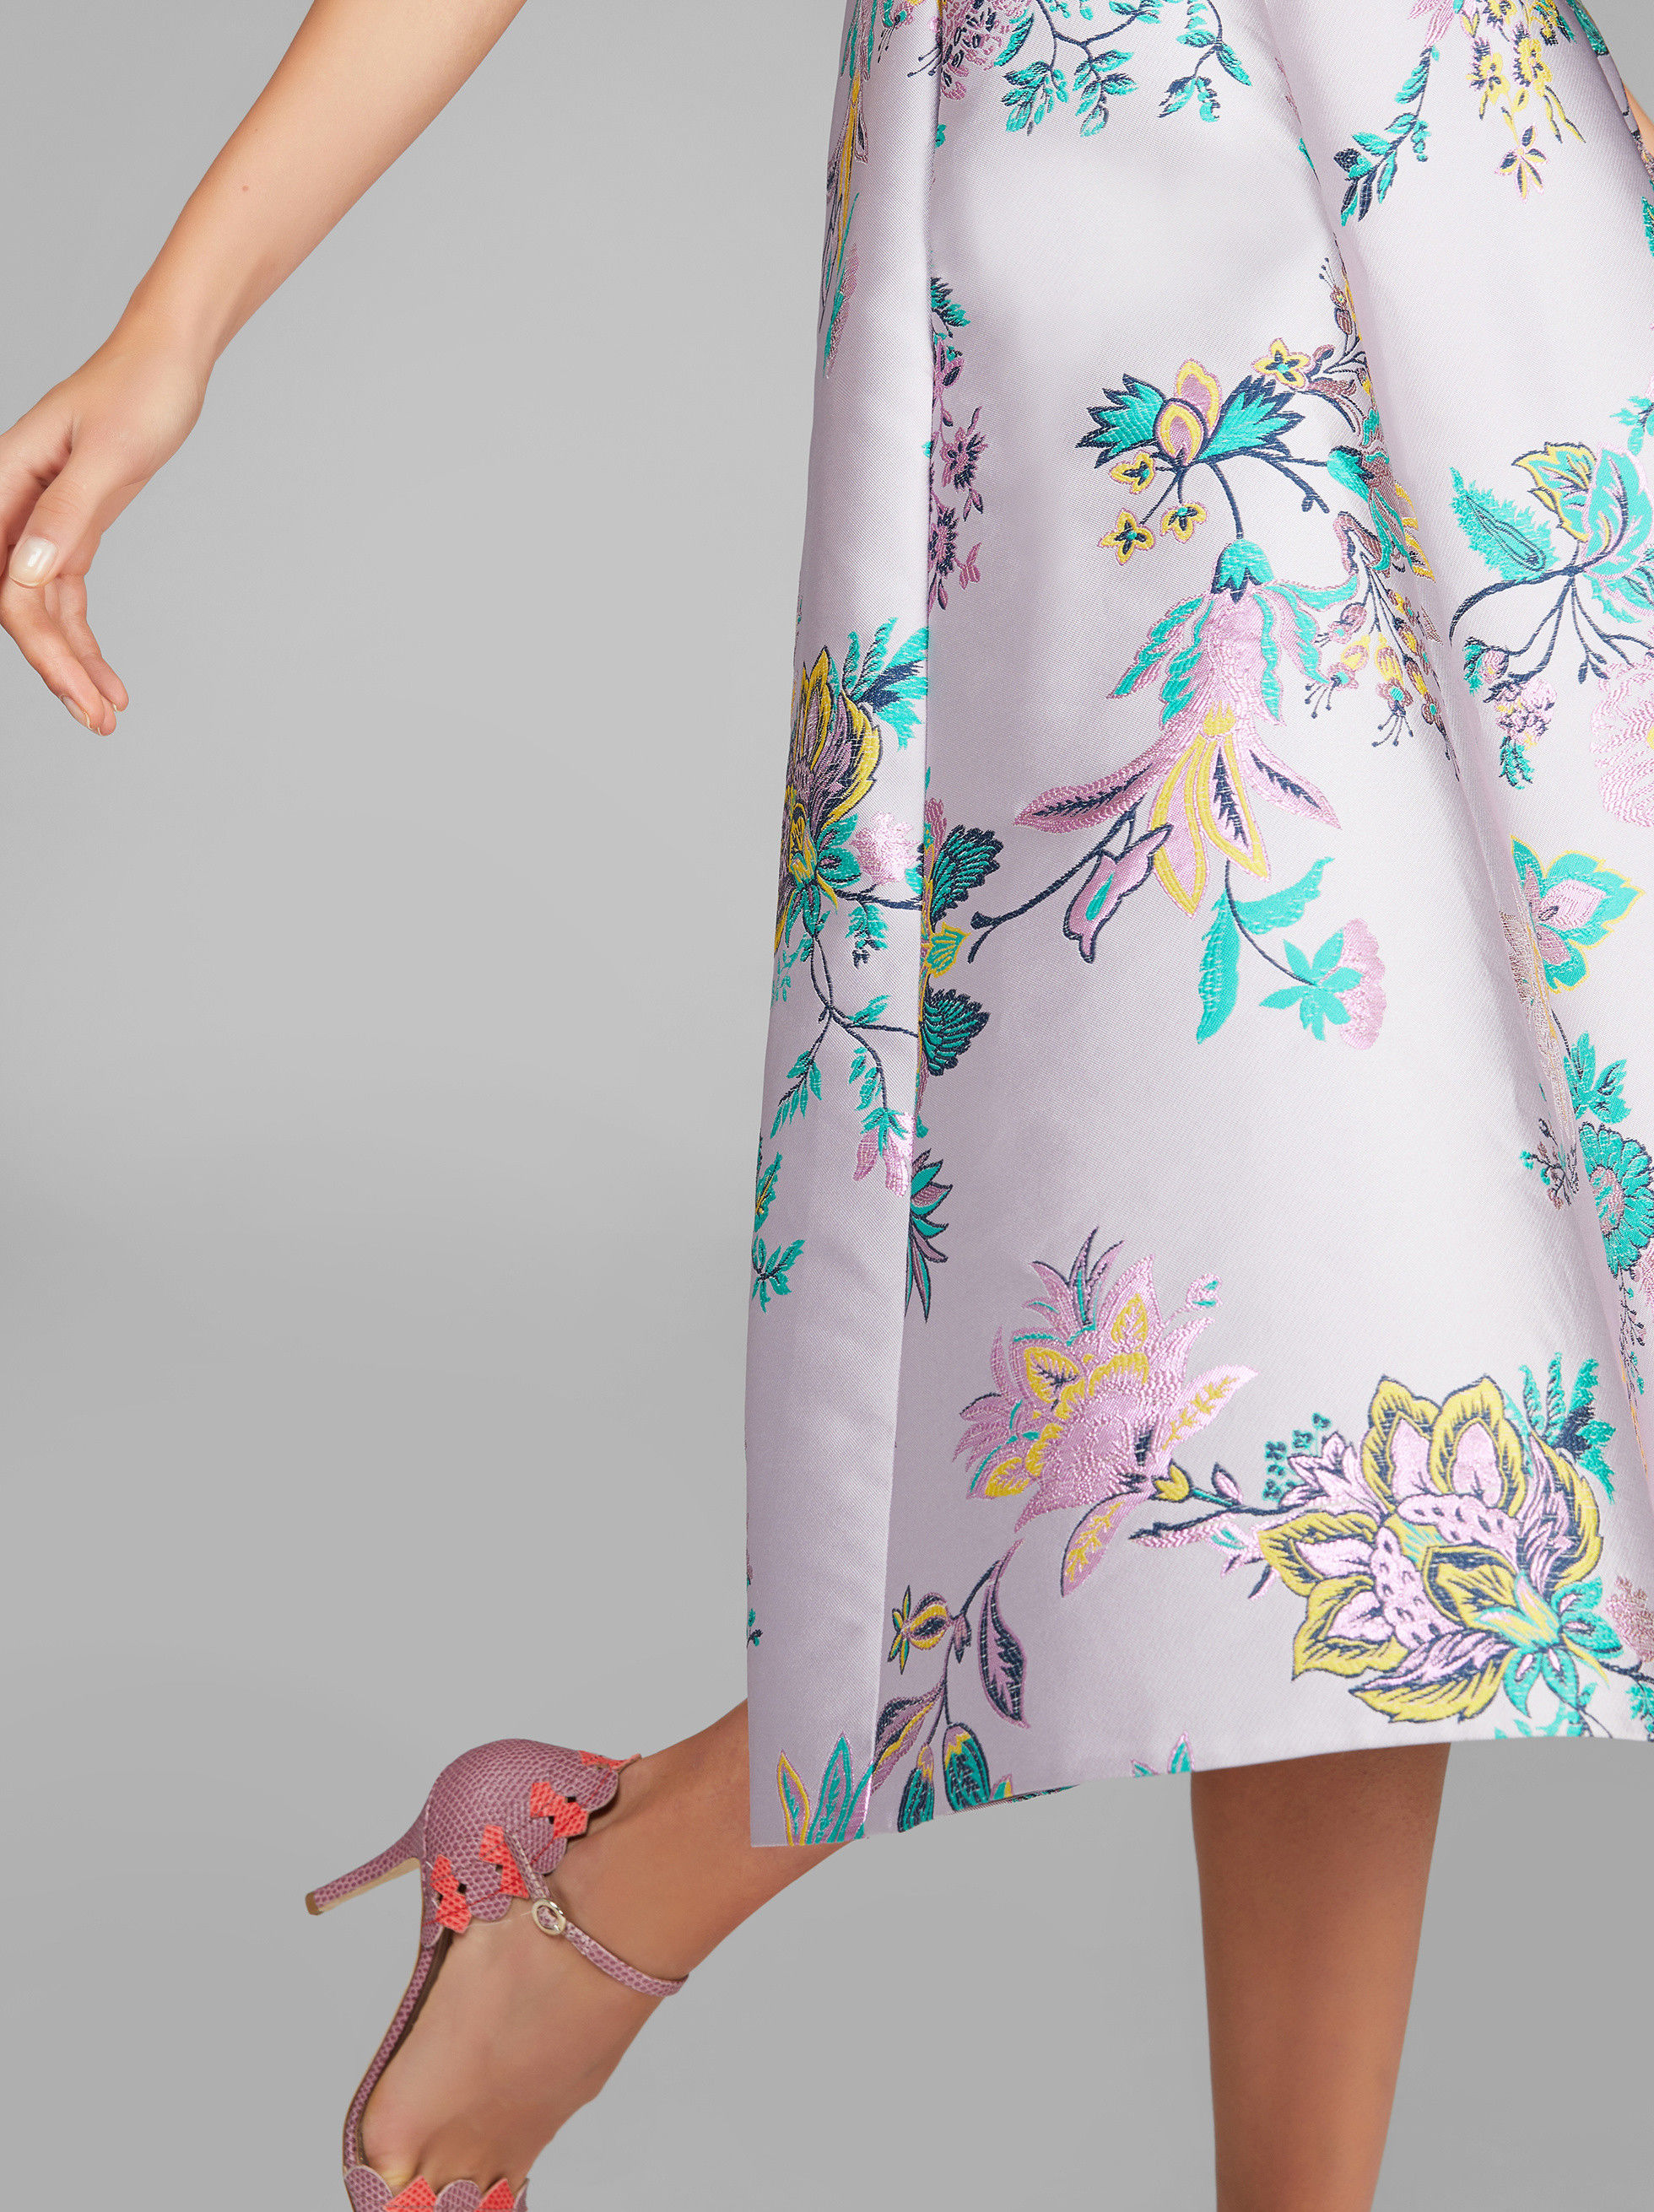 FLOWERED JACQUARD DRESS